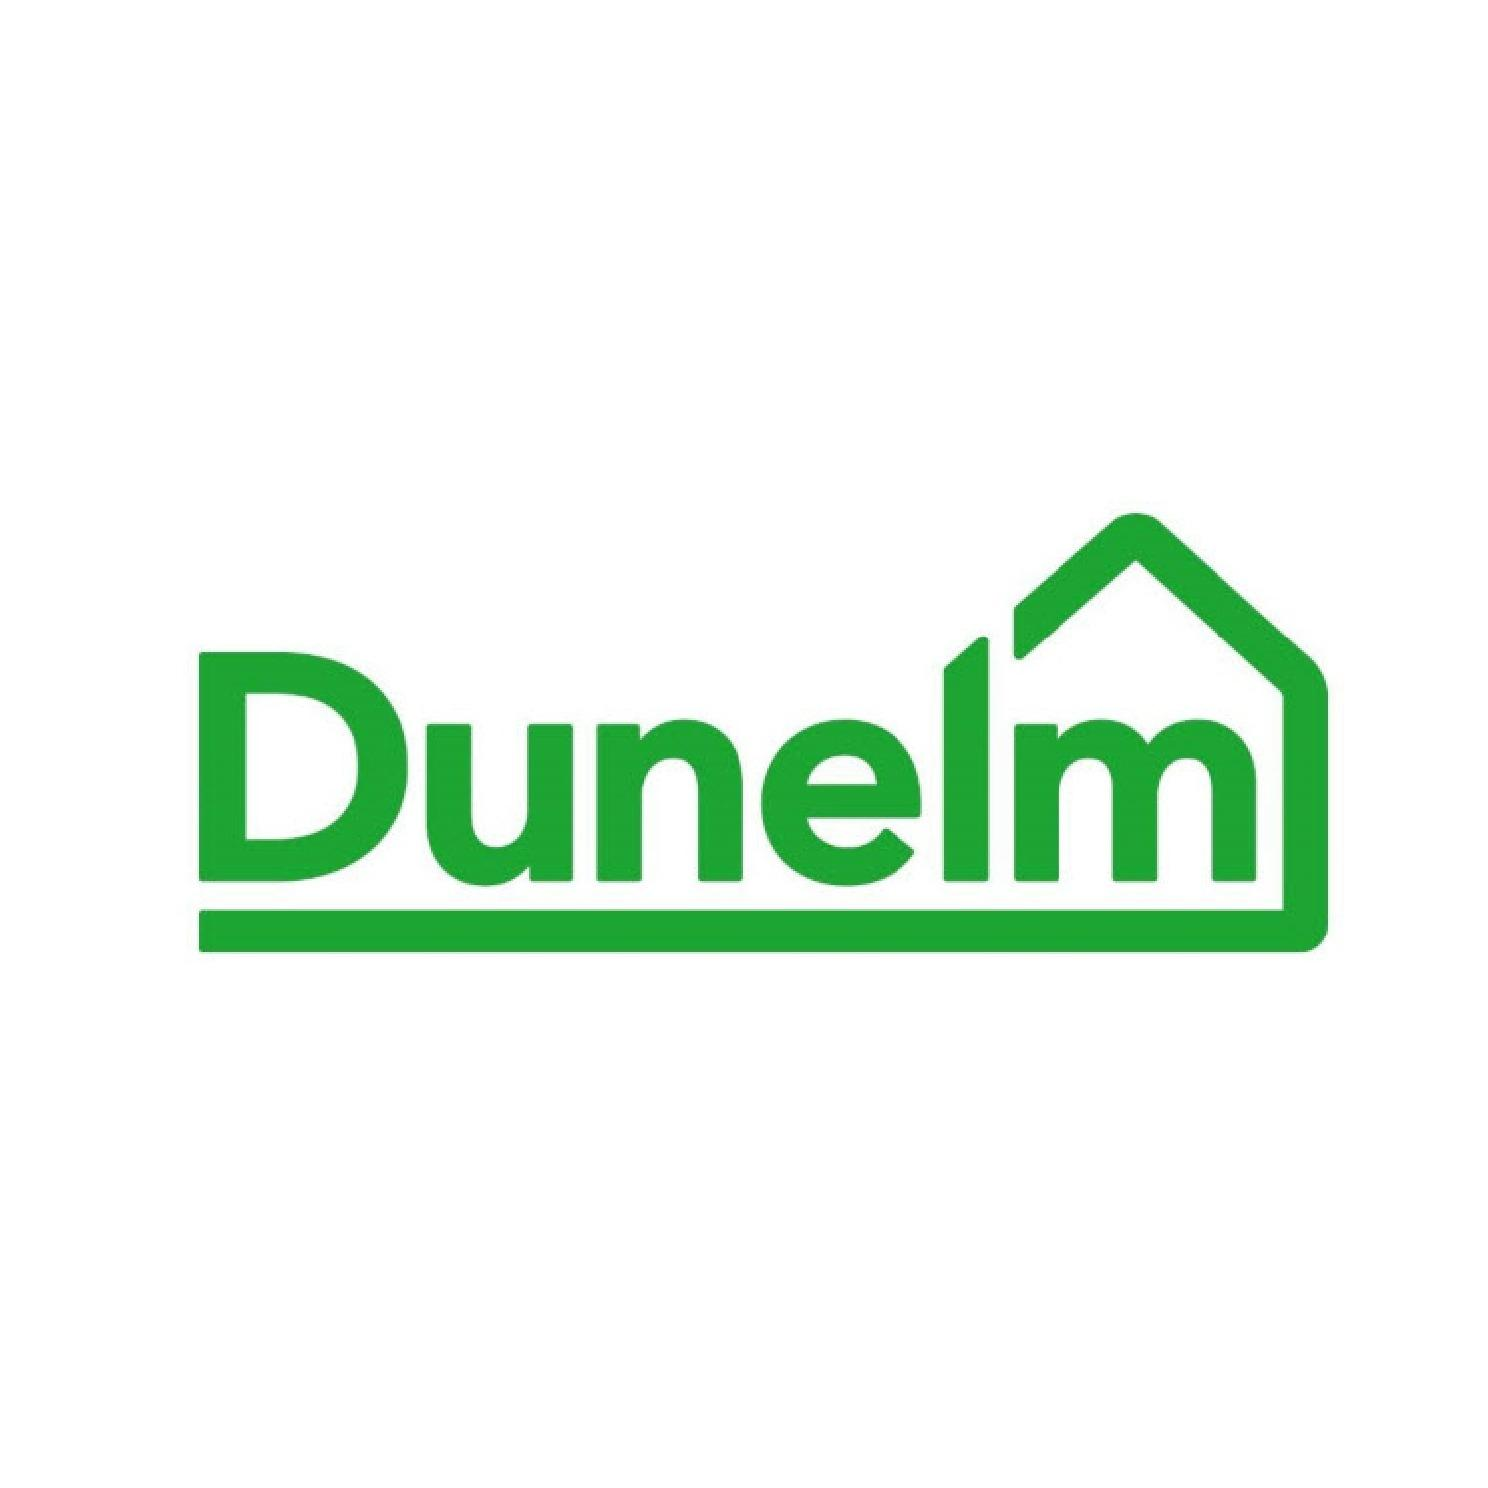 Dunelm - Greenford, London UB6 8LZ - 020 3006 0784 | ShowMeLocal.com